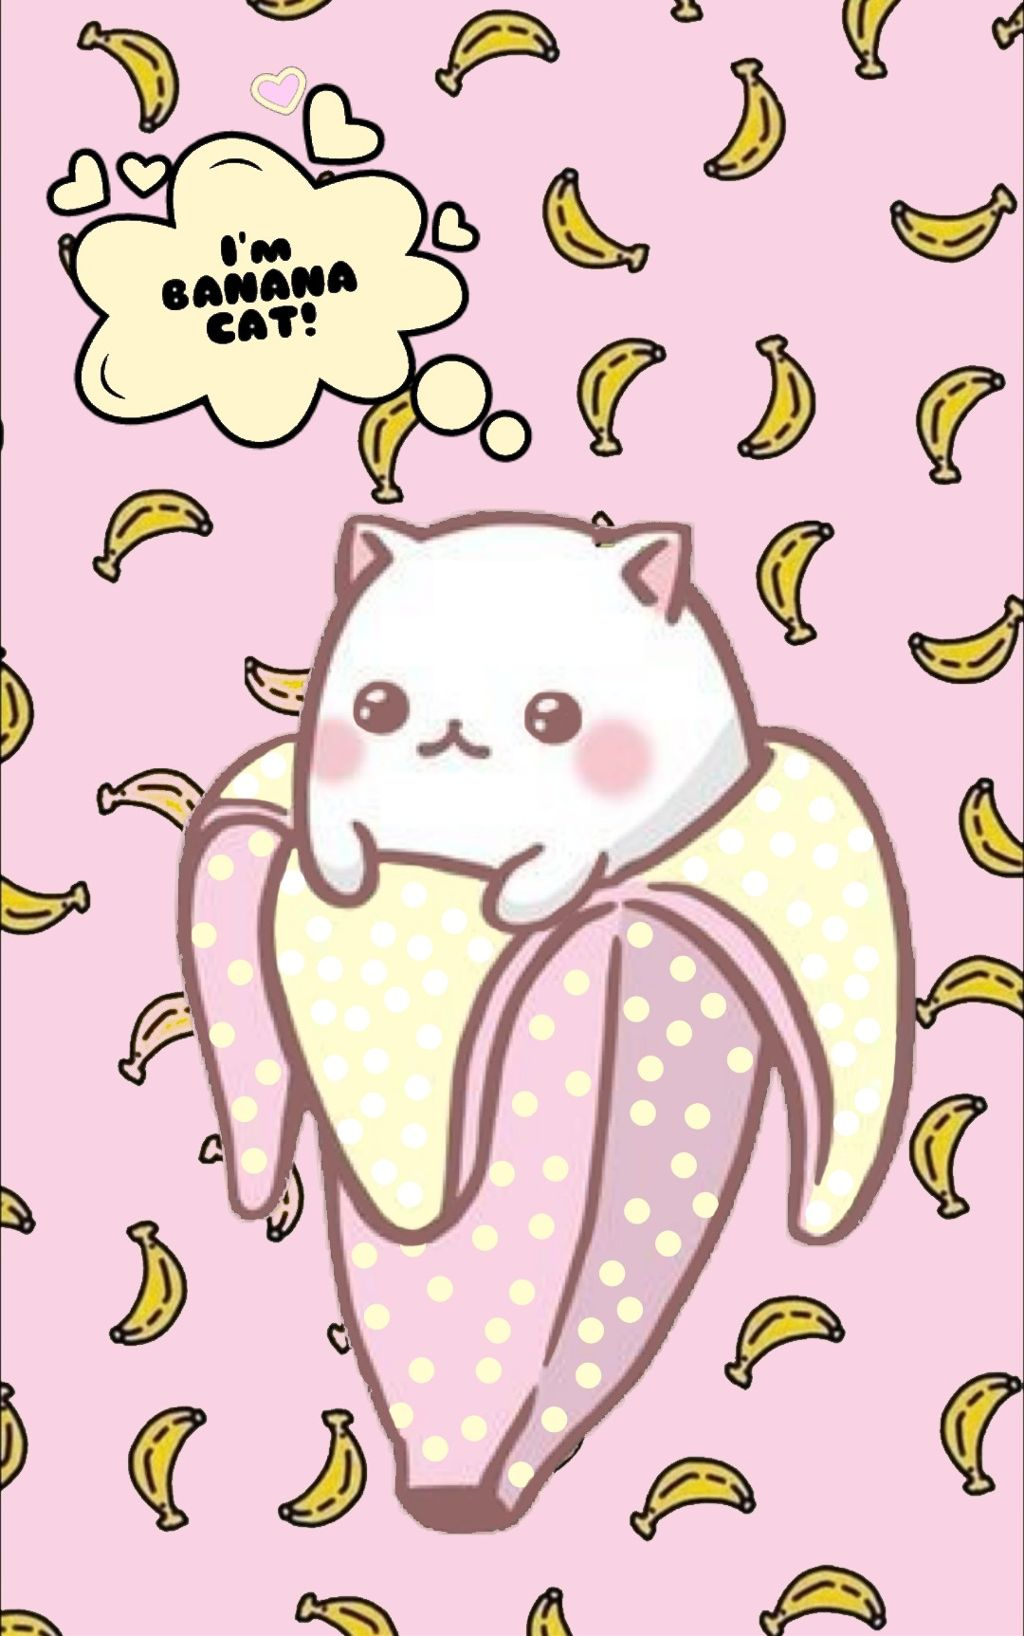 Wallpaper Bananacat Banana Cat Kawaii Cute